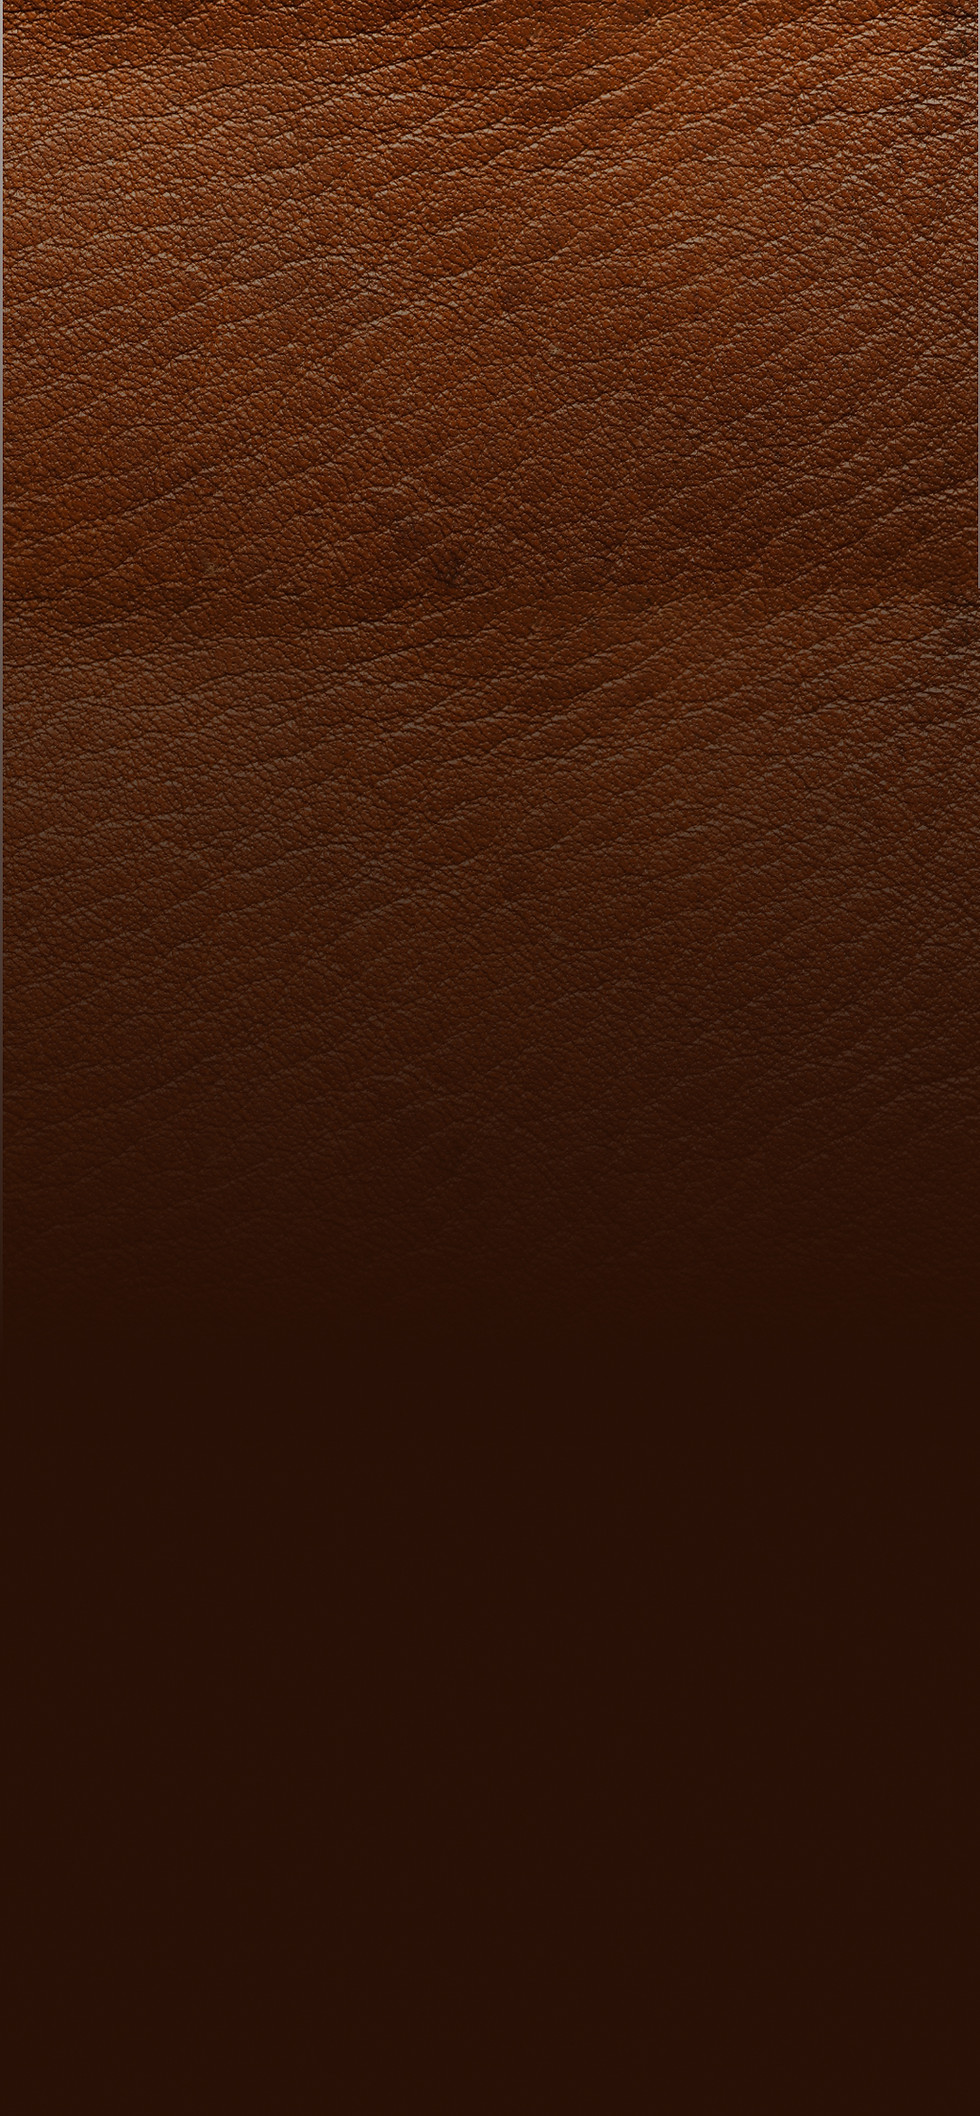 Leather background for a gret shoe repair service